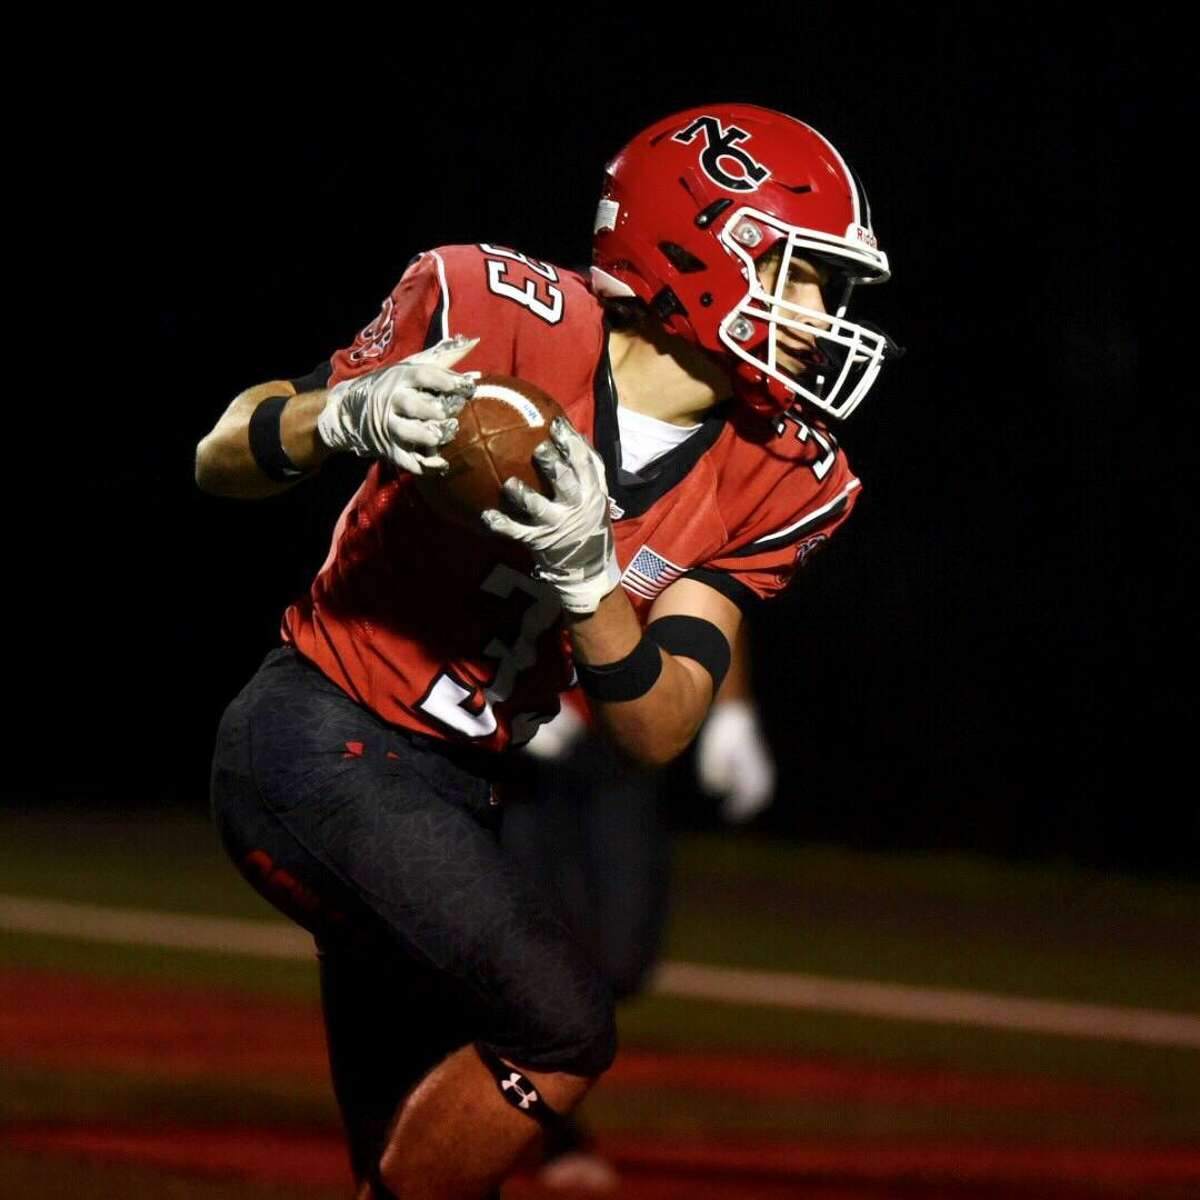 New Canaan's Hunter Telesco scores on a touchdown reception during a football game against North Haven on Friday at Dunning Stadium.